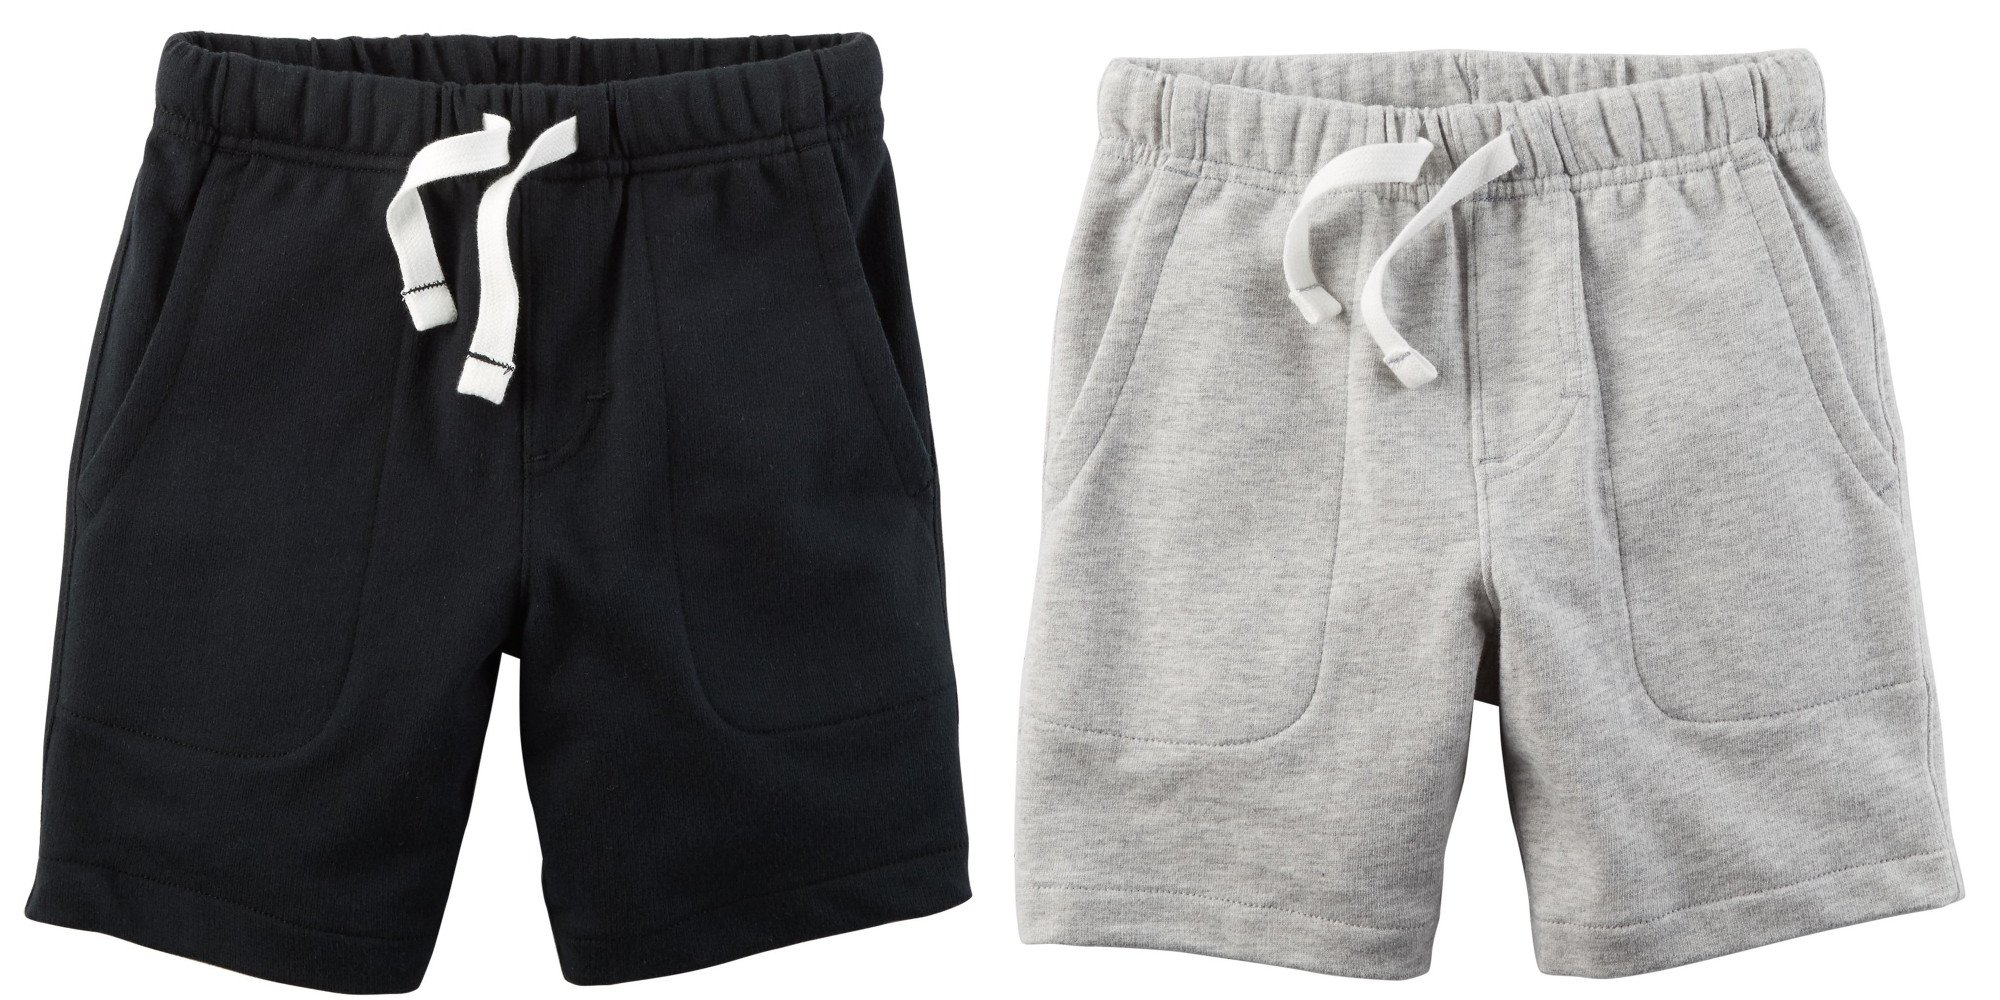 Carter's Set of 2 Boy's Cotton Pull On Shorts Toddler Little and Big Boys (5T, Light Heather Grey and Black)